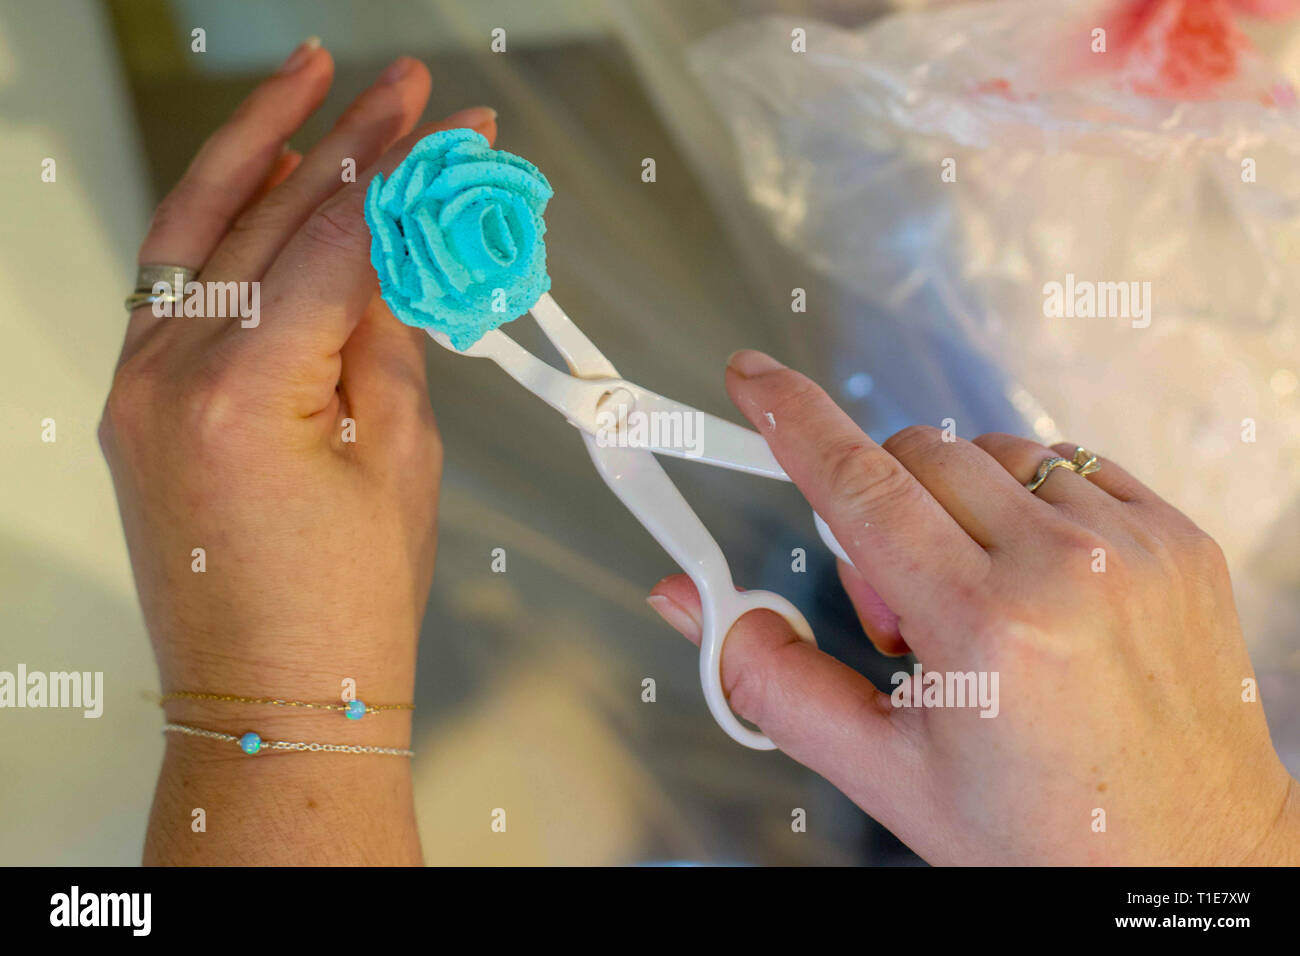 Decorating a birthday cake with blue icing sugar flowers - Stock Image